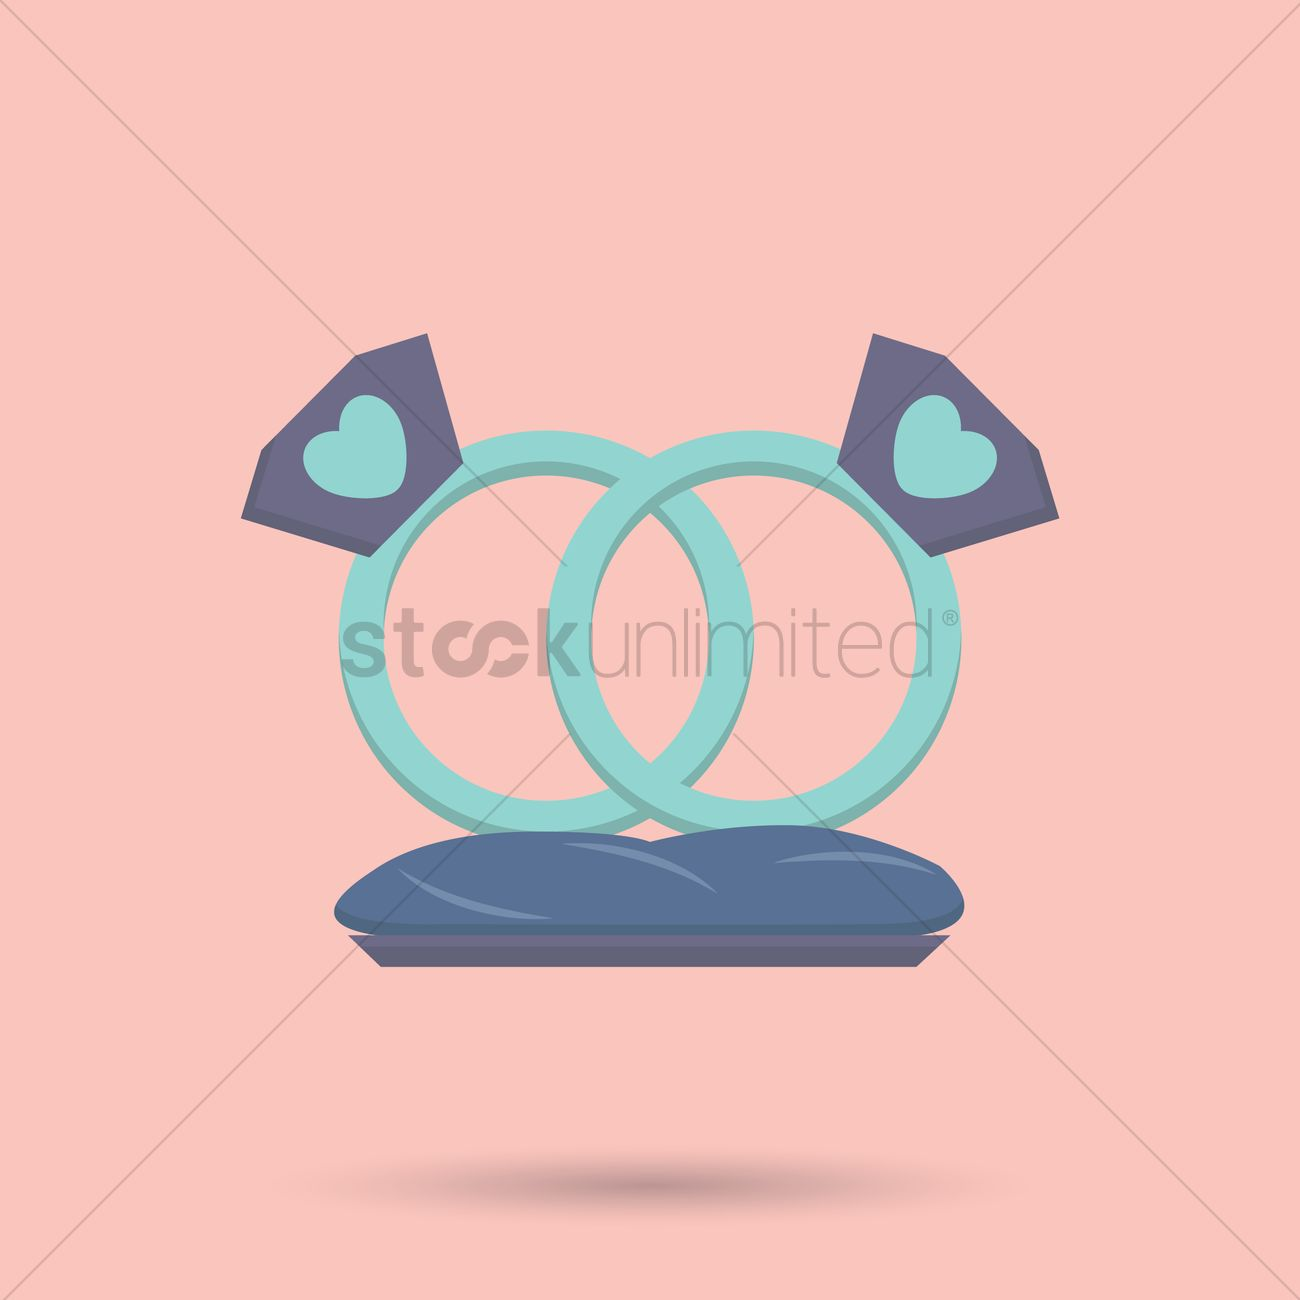 Wedding rings Vector Image - 1337303 | StockUnlimited